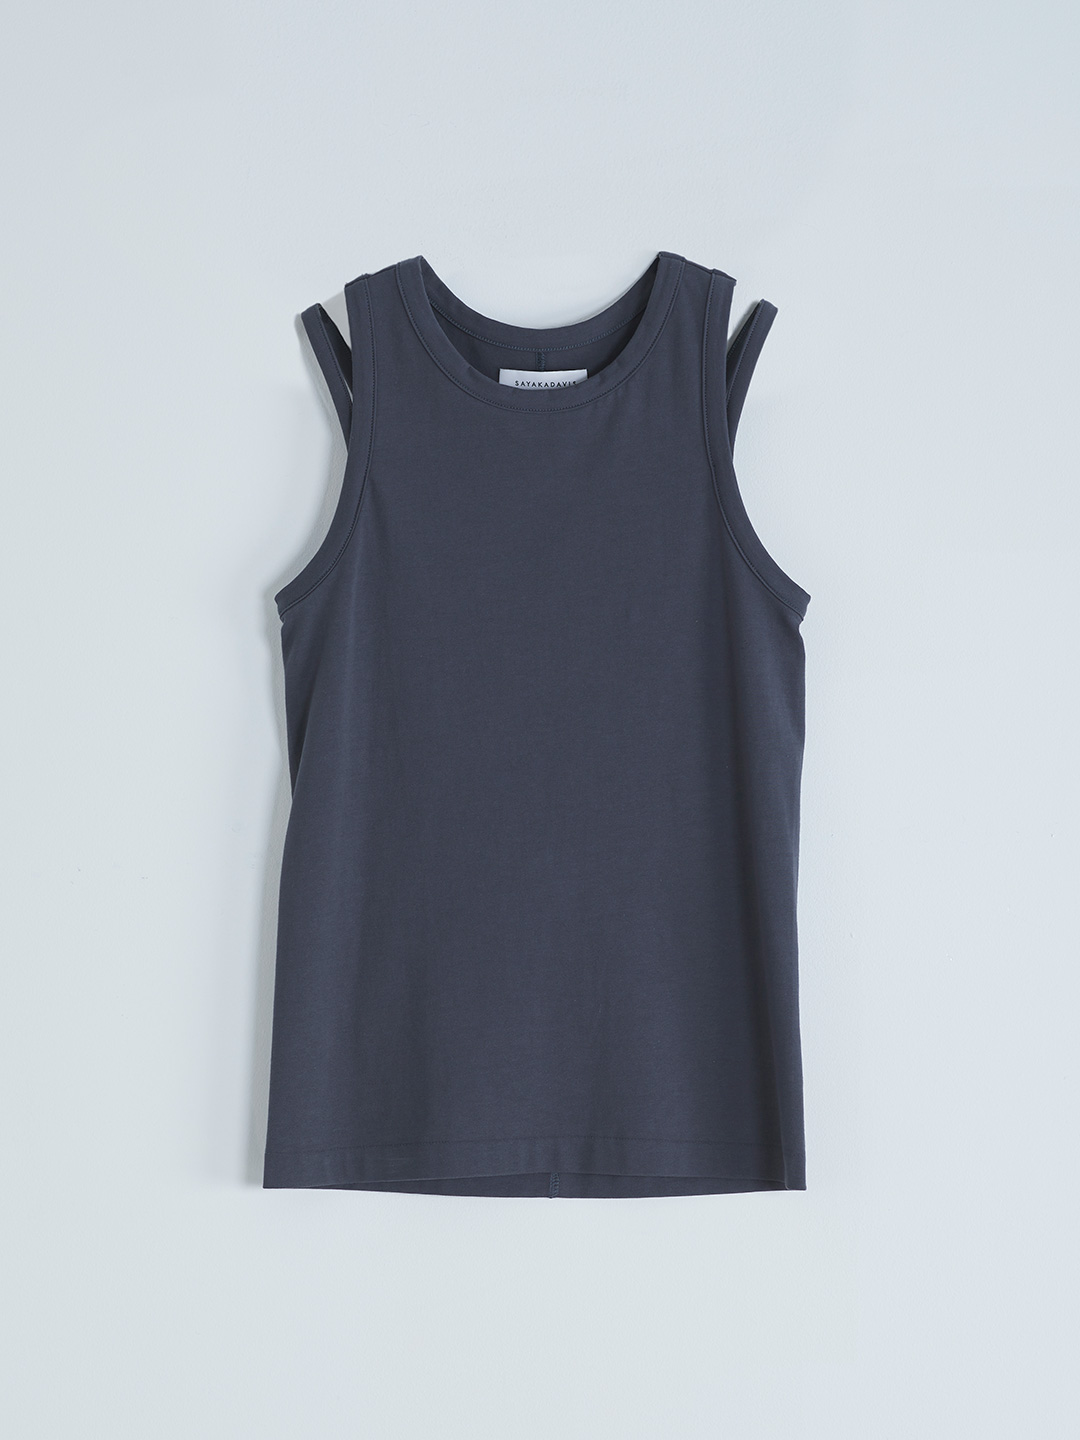 Double Strap Tank - Navy【LIMITED ITEM】